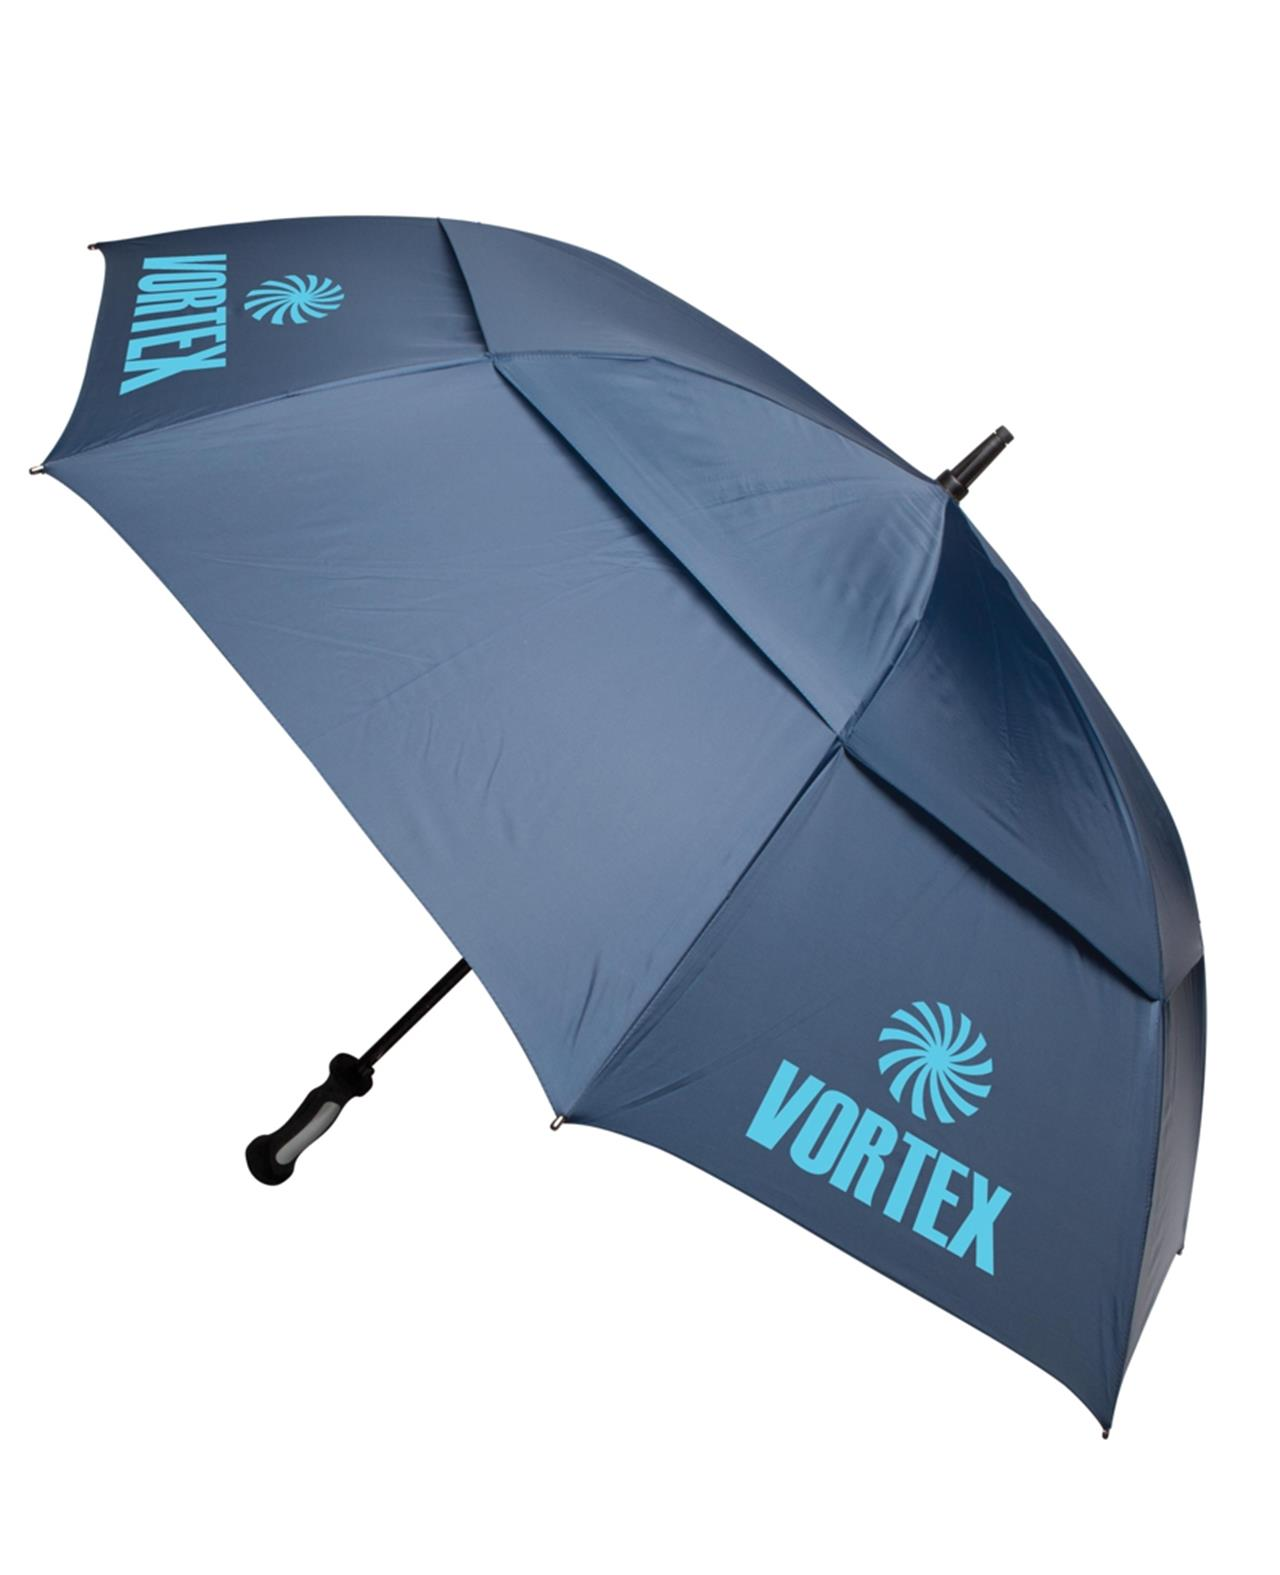 Blizzard Umbrella